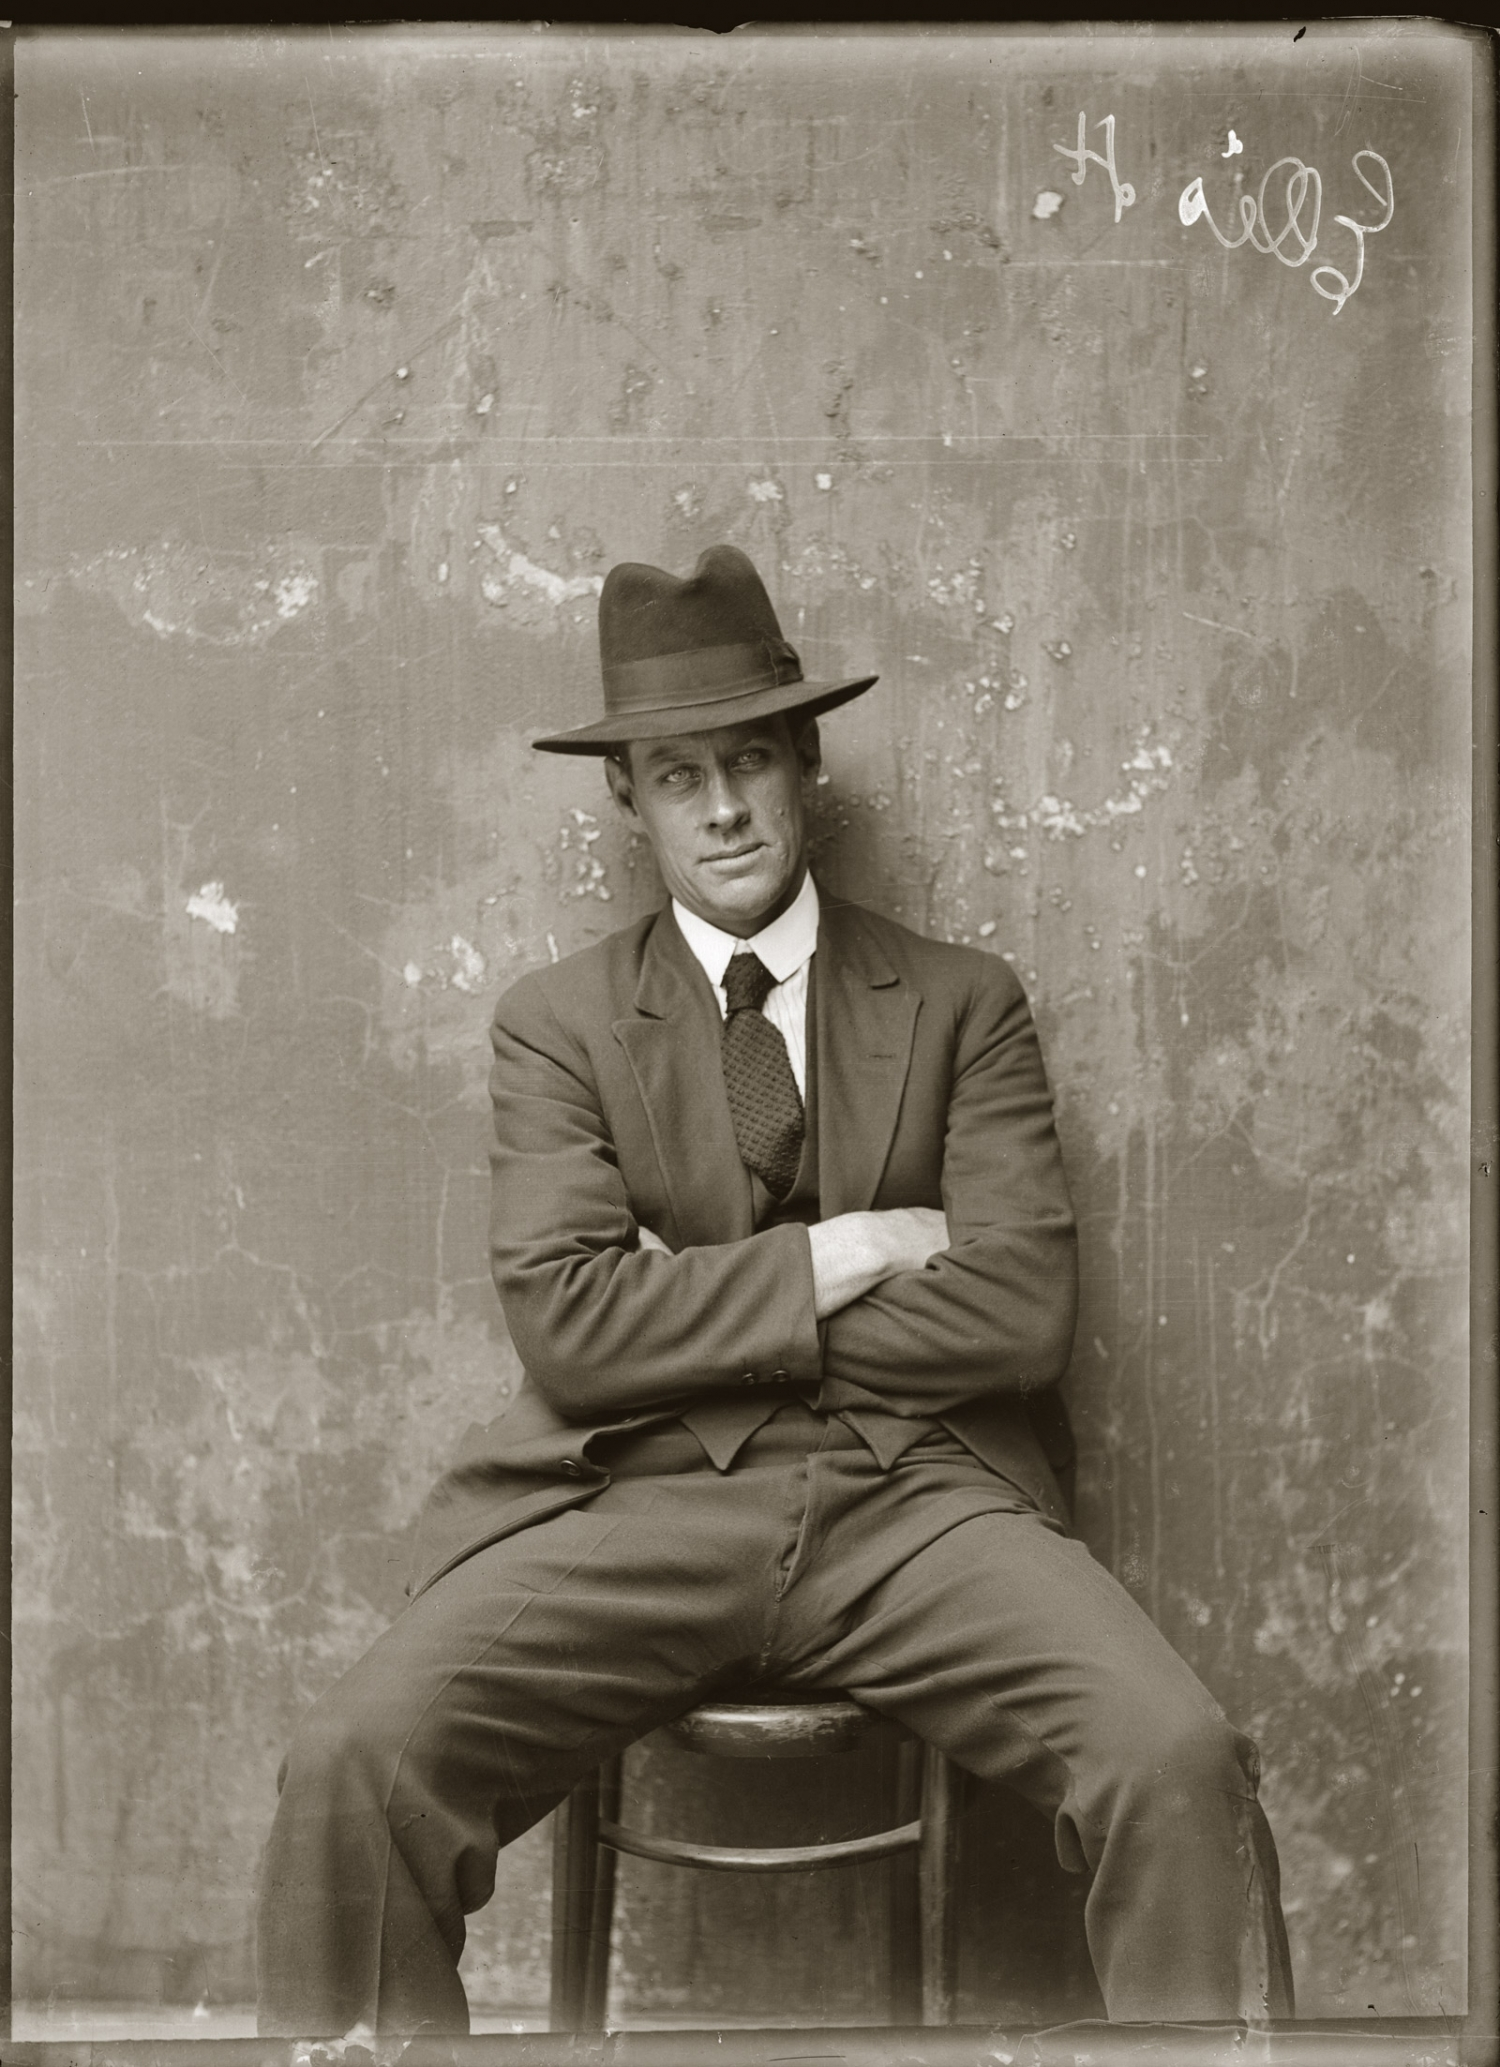 Mug shot of Herbert Ellis. Presumed Central Police Station, Sydney, ca.1920.